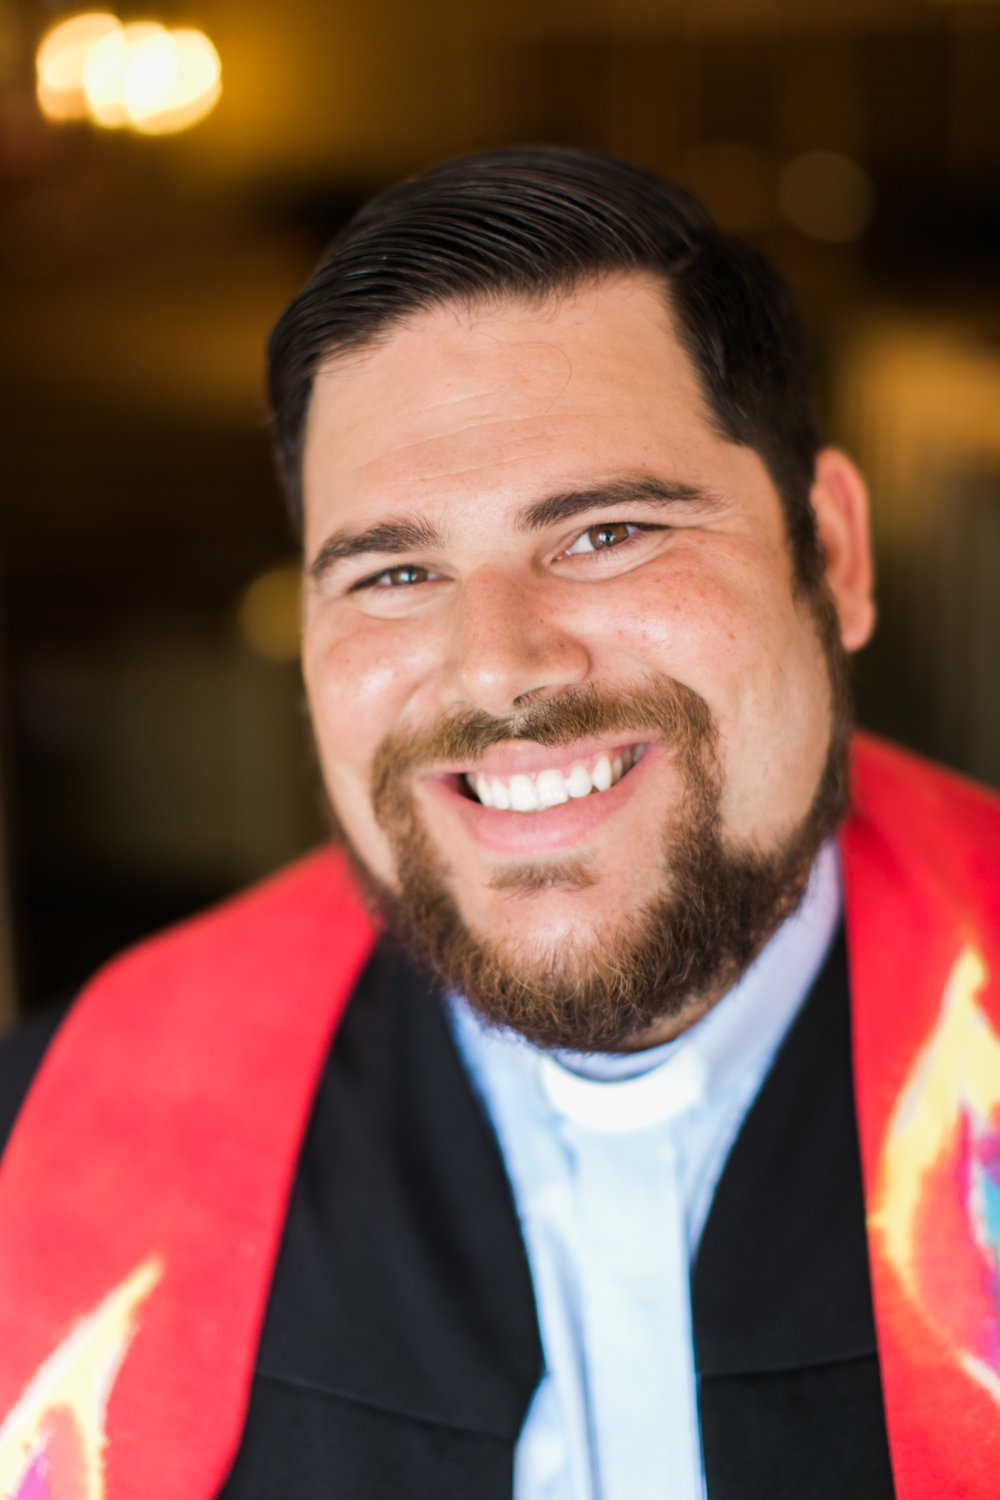 Rev. NathanLonsdale Bledsoe - loves Jesus, his wife Sarah, their two dogs, cooking, hunting, the city of Houston, trying new restaurants, and a lot of things he cannot fit in a short bio.Nathan grew up in Austin before moving to Houston to attend Rice University. After graduating, Nathan worked at St. Paul's United Methodist Church before attending Union Theological Seminary in the City of New York. While at Union, he served at the United Methodist Church of the Village, helped run a soup kitchen, and wrote a thesis project on theology and food. He believes when people gather to share a meal, Jesus Christ shows up (John 21).Nathan served as the pastor of missions and evangelism at St. Peter's UMC in Katy from 2013-2017. He currently serves as the Senior Pastor of St. Stephen's UMC (Houston TX), the President of the National Board of U.M. ARMY and on the Texas Annual Conference Committee on Unity.